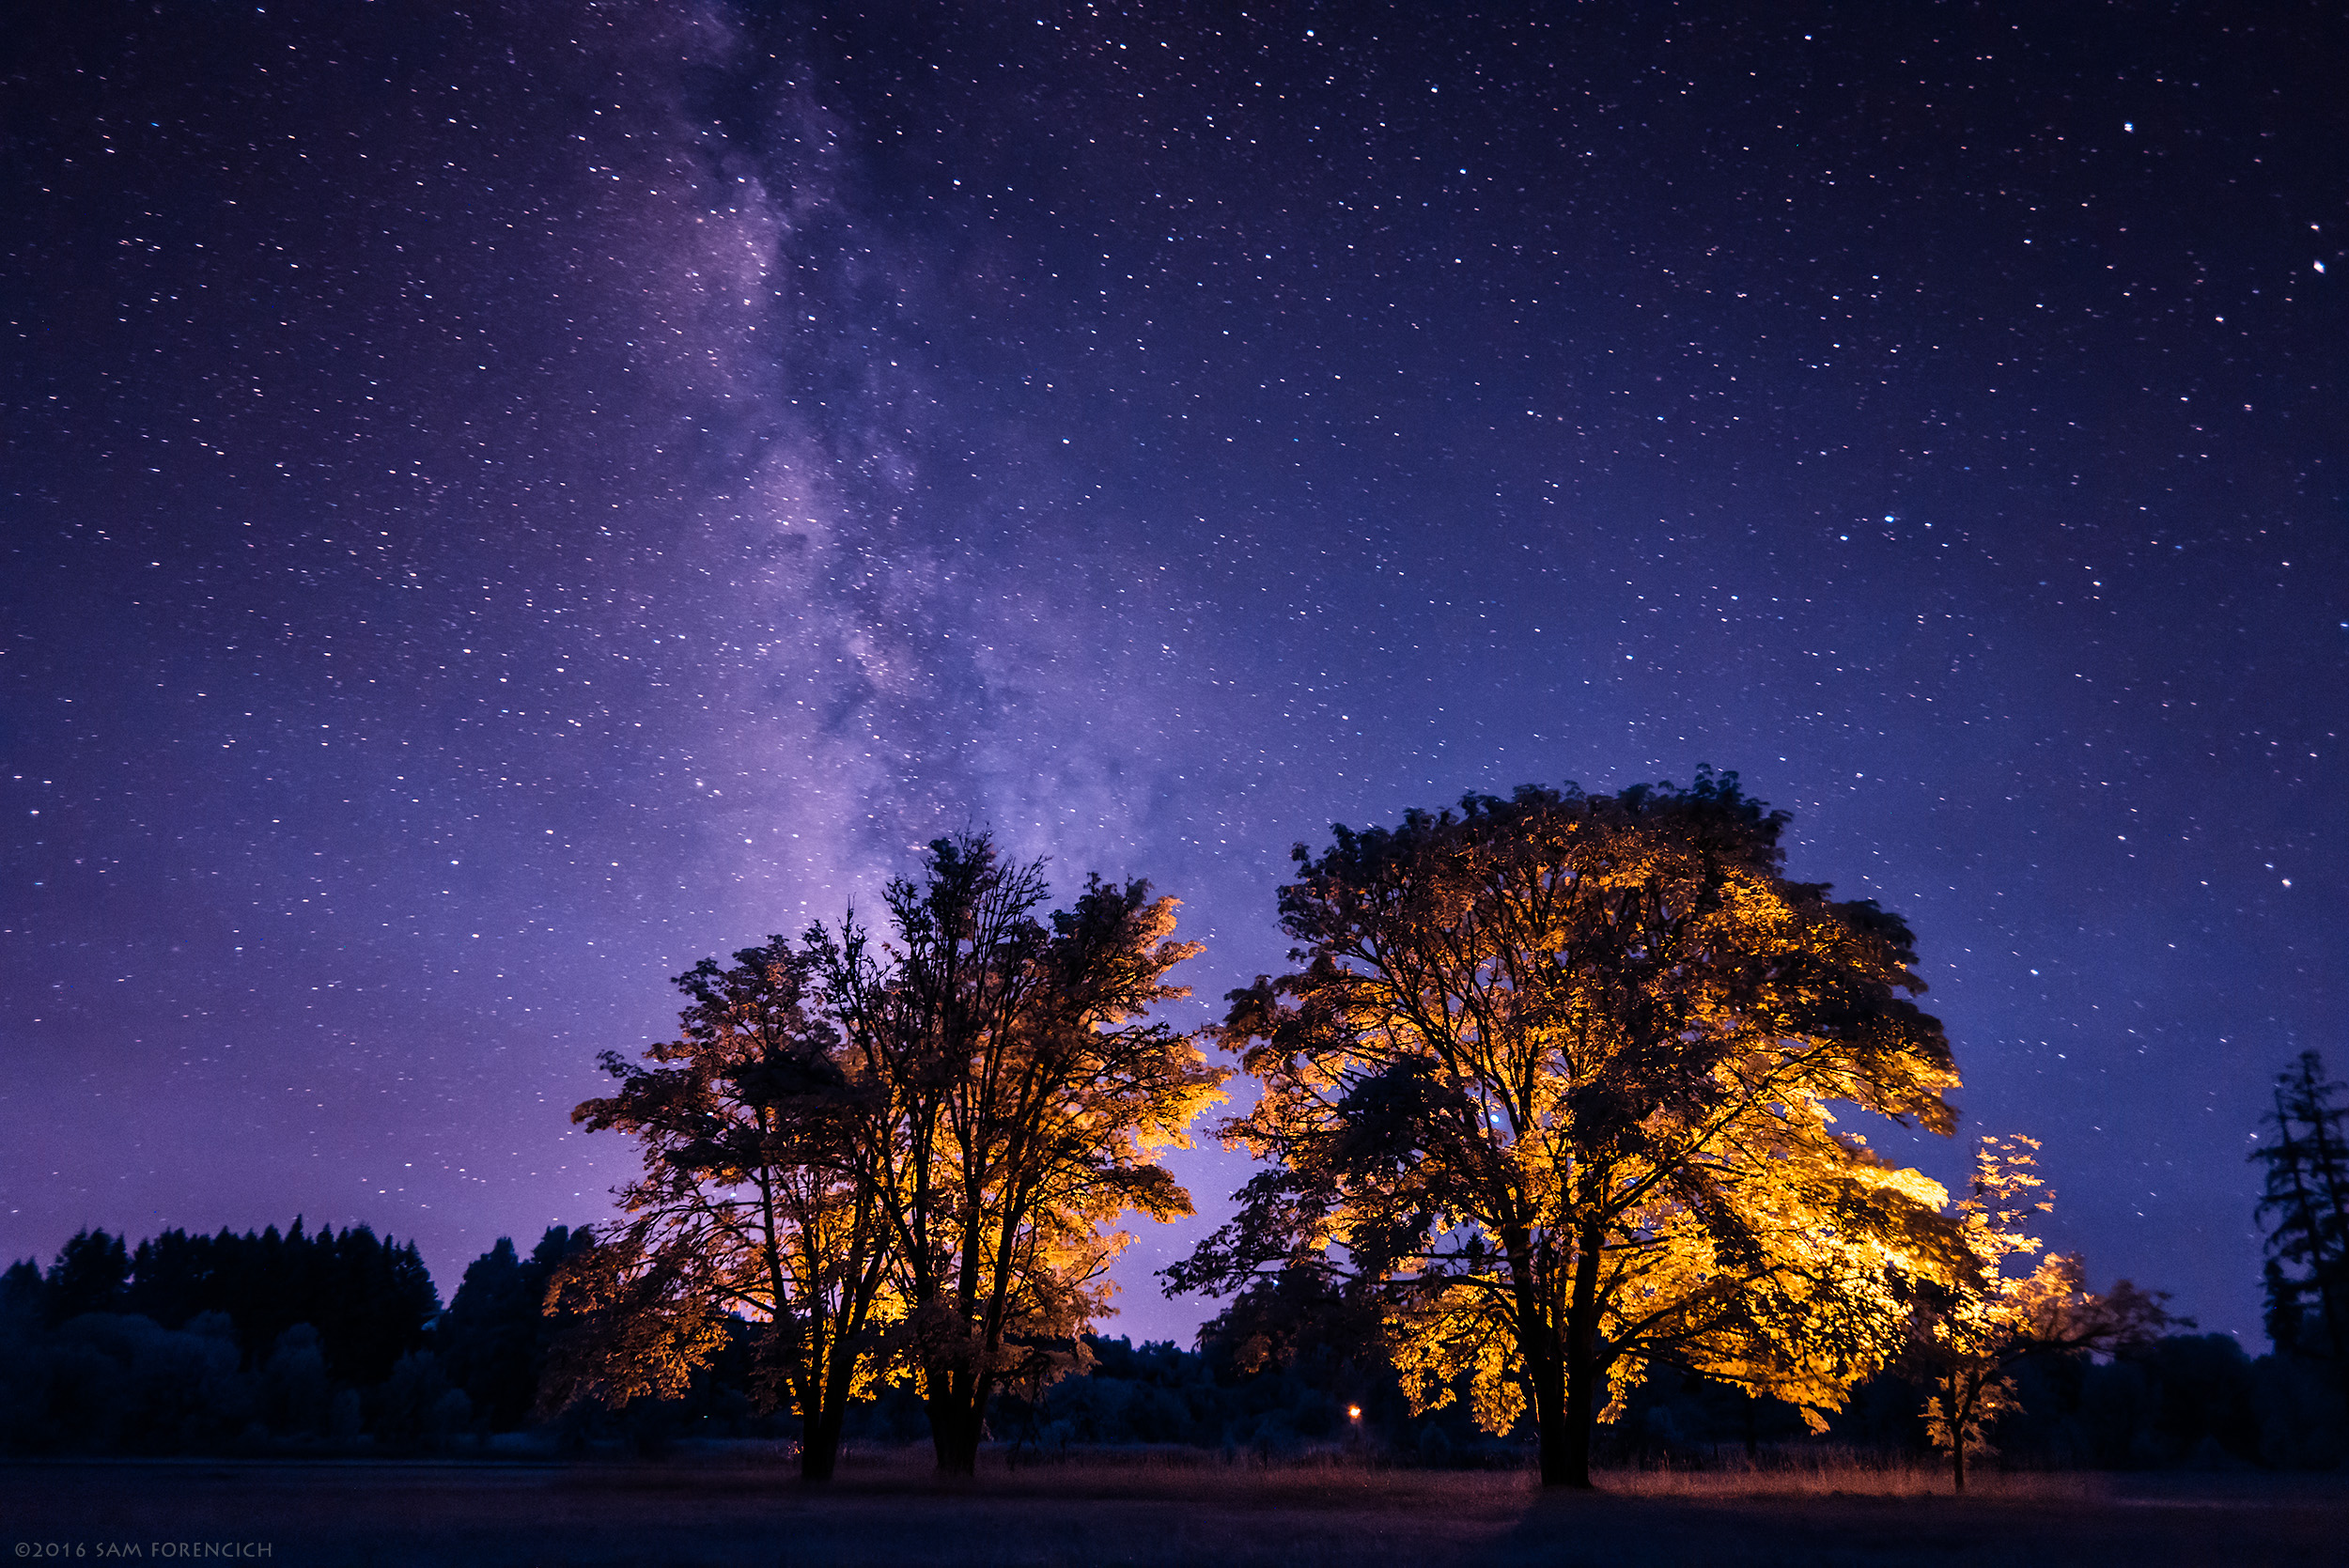 The Milky Way tracks a path over Oregon's Champoeg State Park. Still image from Invisible Oregon time-lapse sequence. IR converted Nikon D750. Trees artificially illuminated. © 2016 Sam Forencich